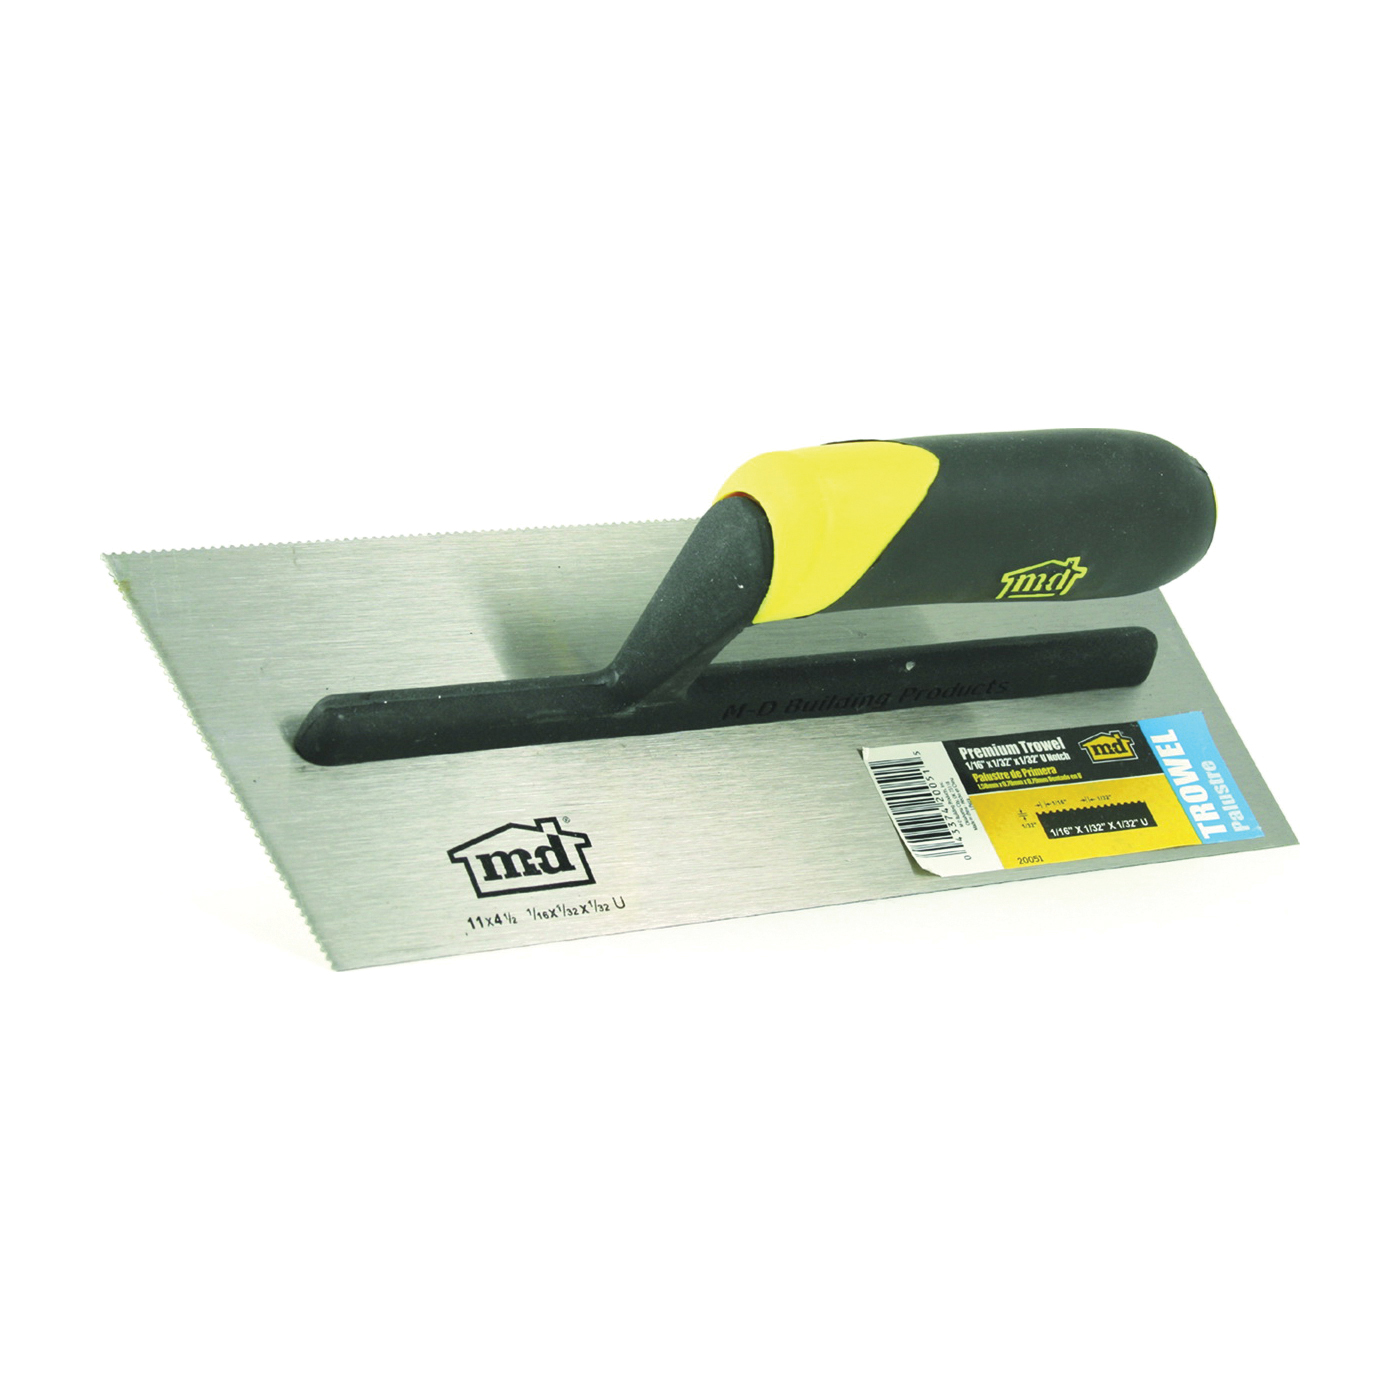 Picture of M-D 20051 Tile Installation Trowel, 11 in L, 4-1/2 in W, U Notch, Comfort-Grip Handle